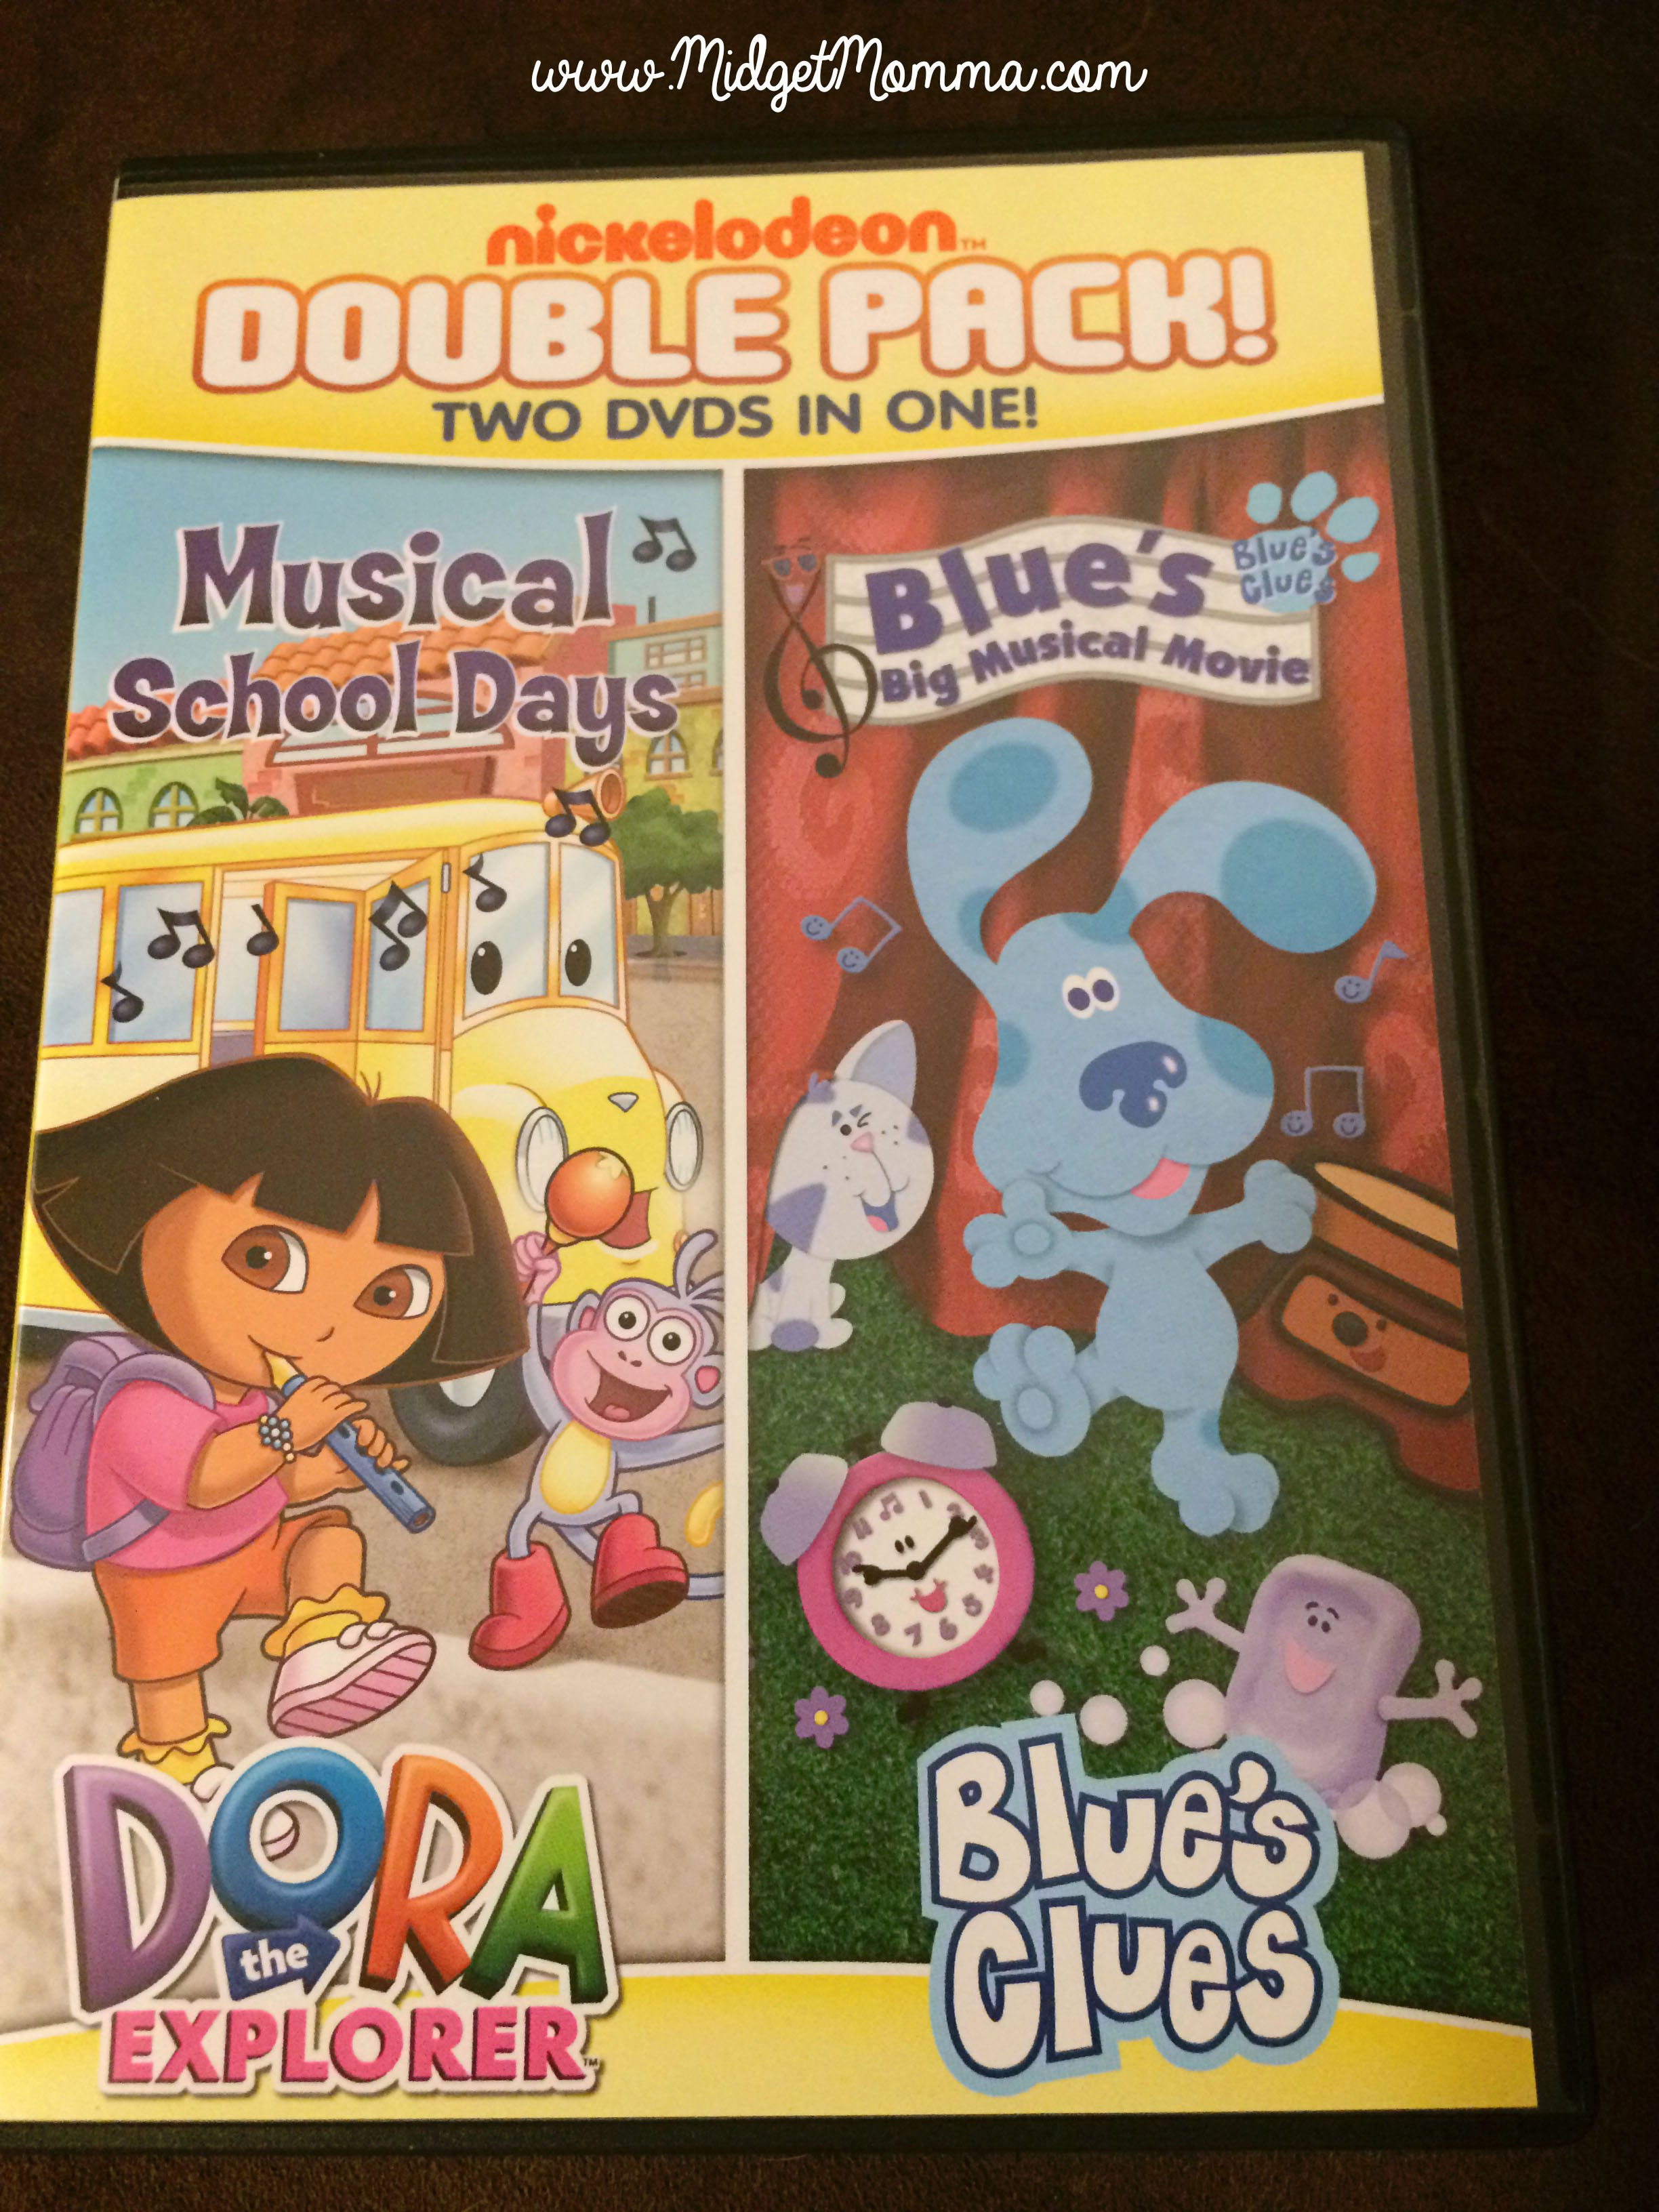 holiday gift guide nickelodeon u0027s musical double packdora musical